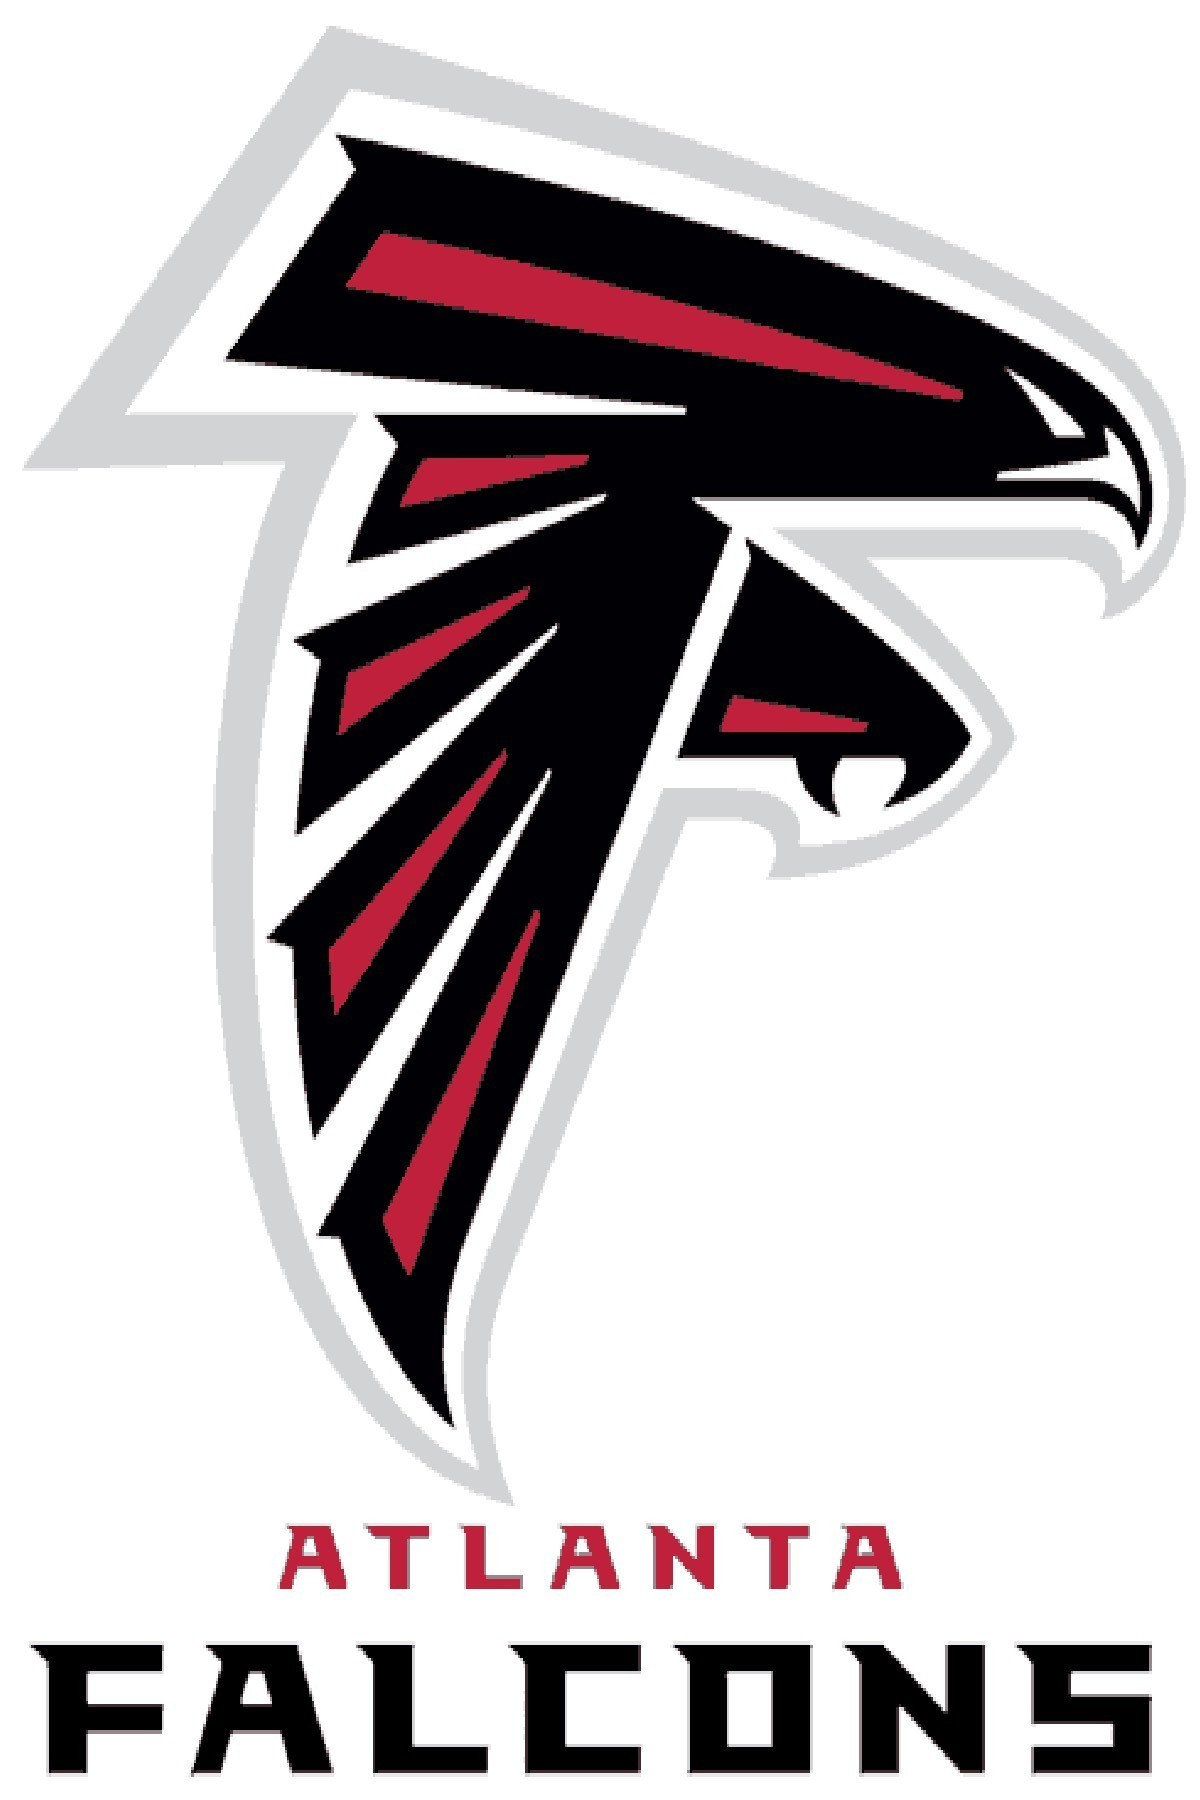 ATLANTA FALCONS - NFL Photo (4311979) - Fanpop